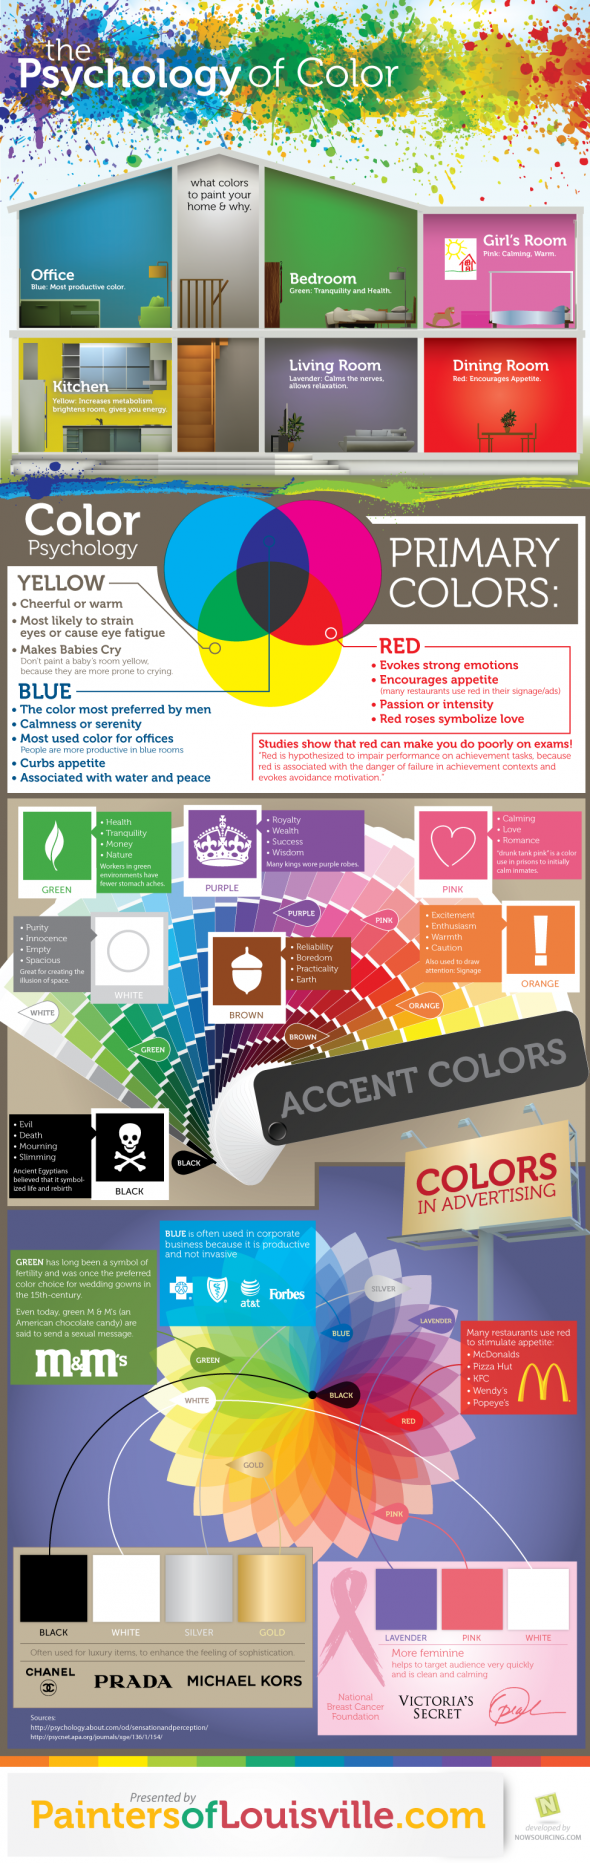 Art color psychology - The Psychology Of Color Is Often Overlooked As An Influence In The Decisions We Make Every